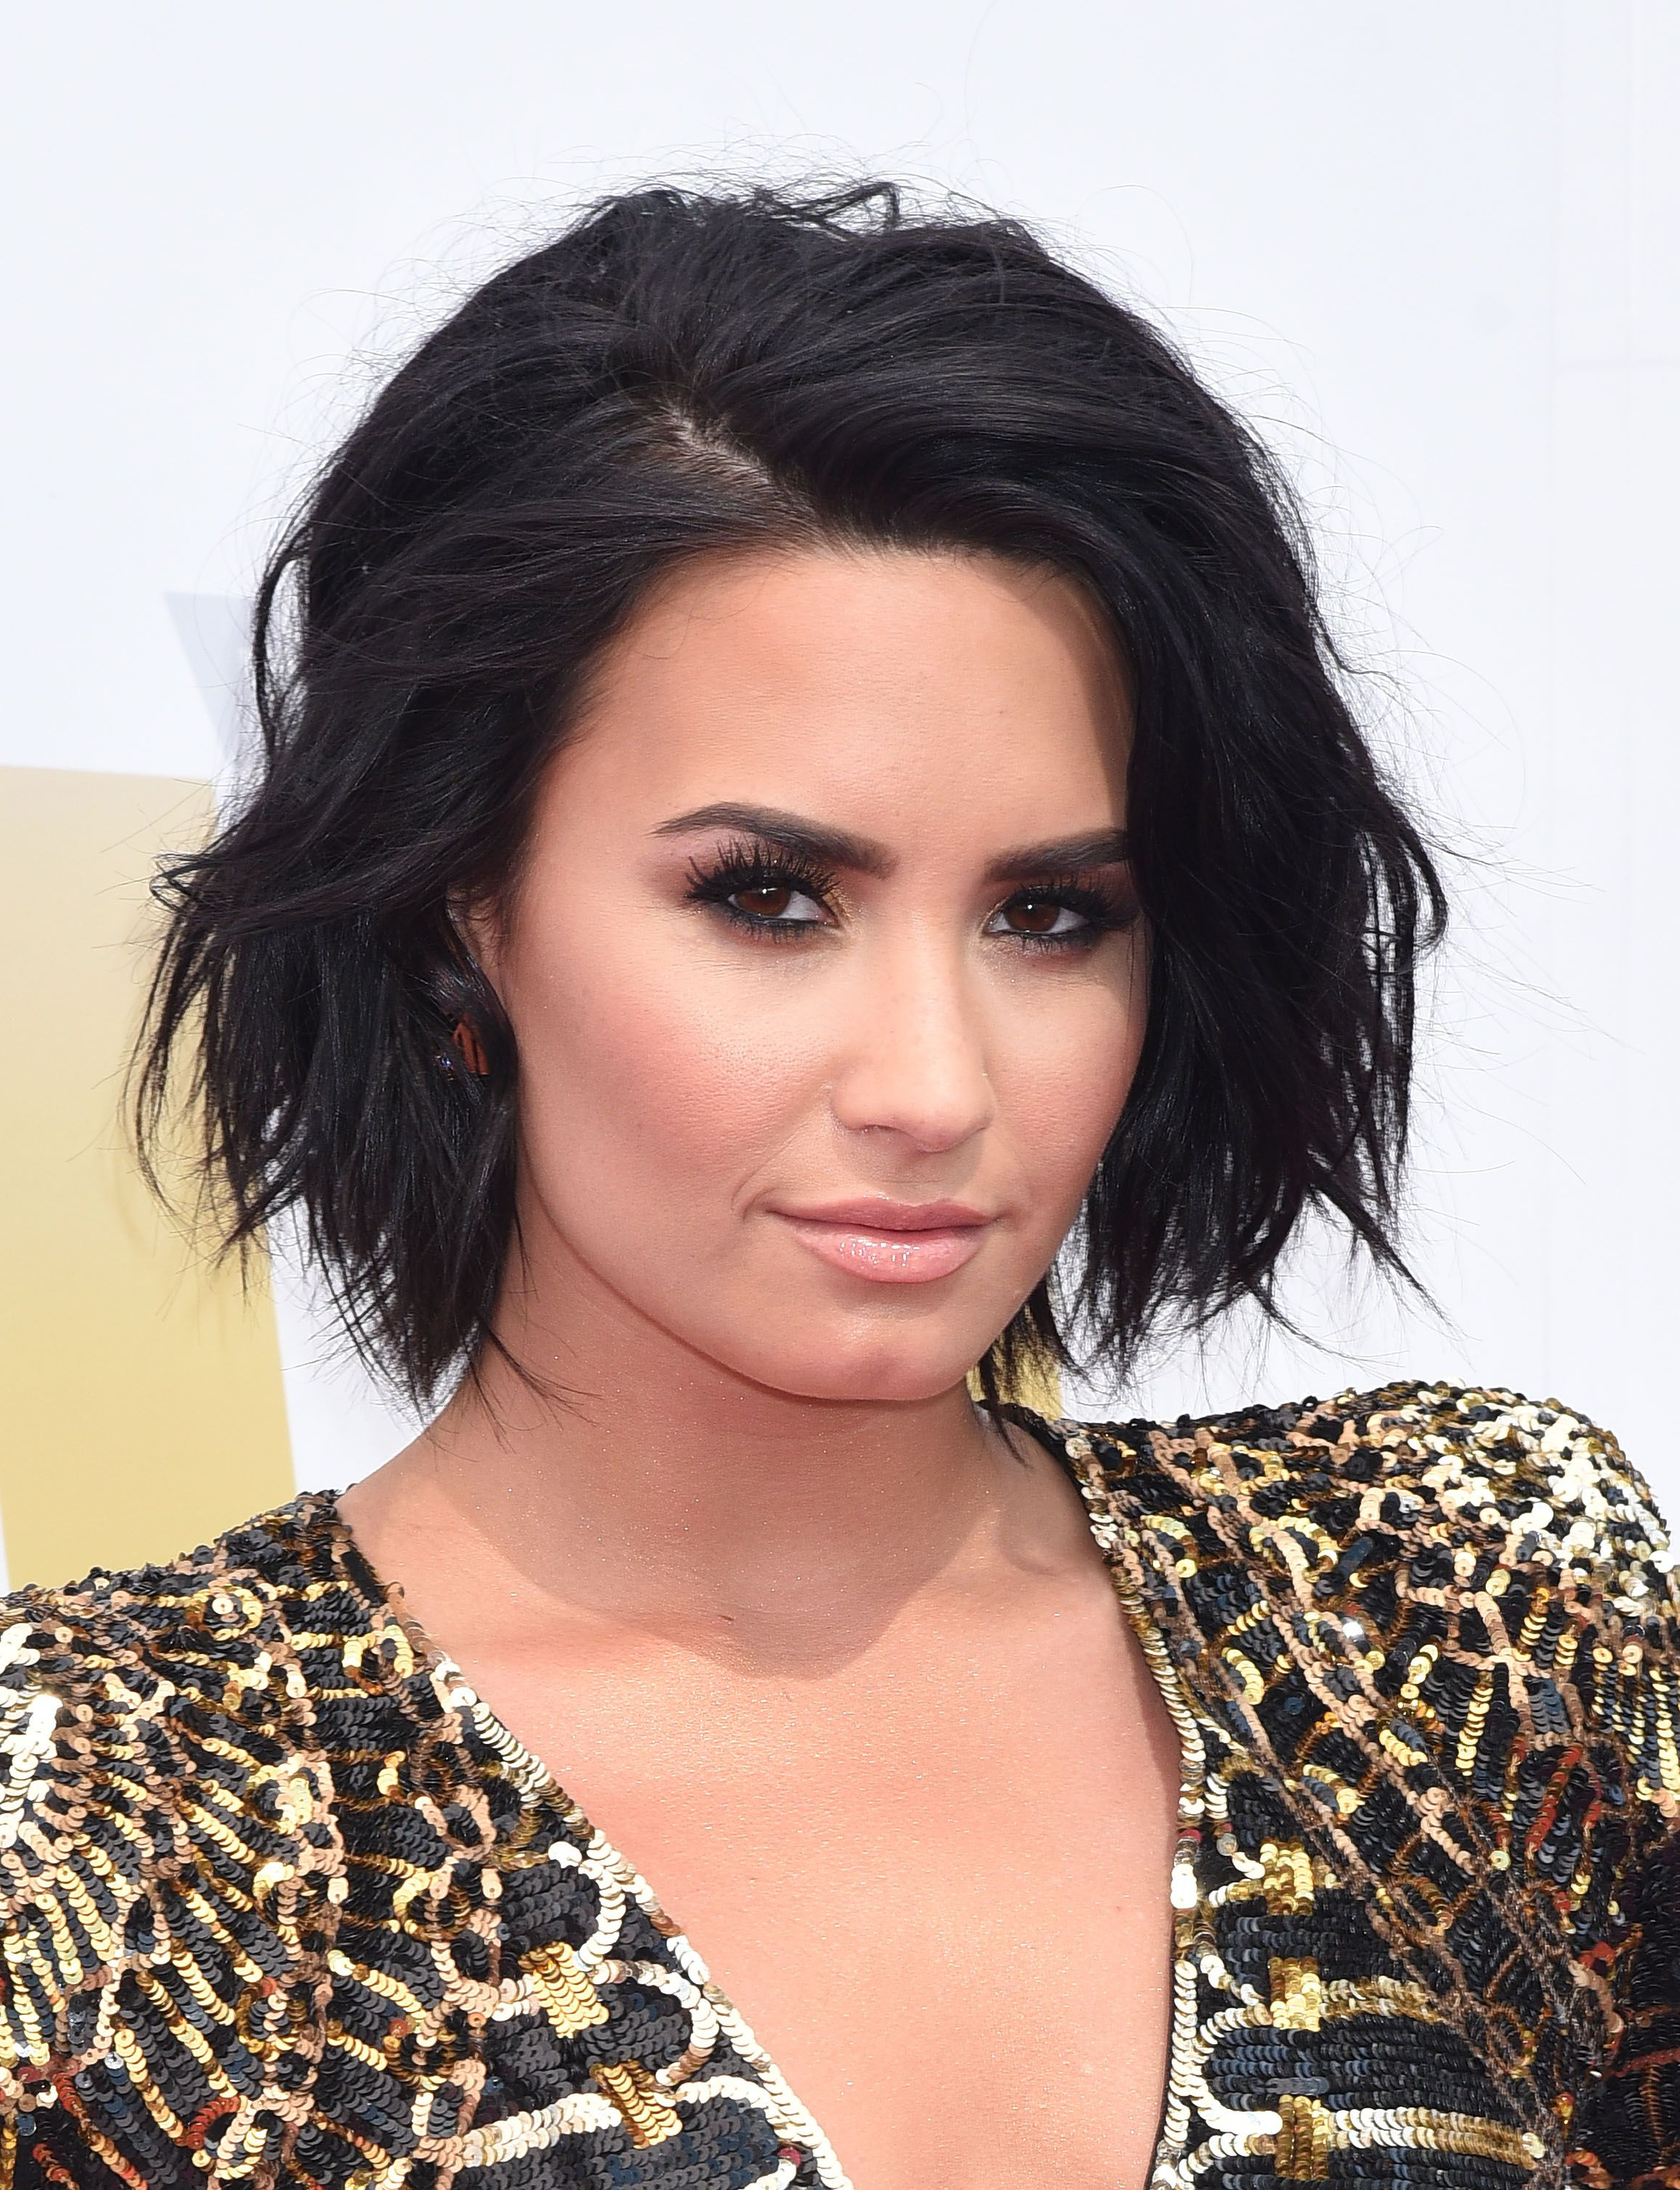 15 Celebs Who Rocked Short Haircuts | Lobs And Bobs | Pinterest Regarding Demi Lovato Short Hairstyles (View 12 of 25)